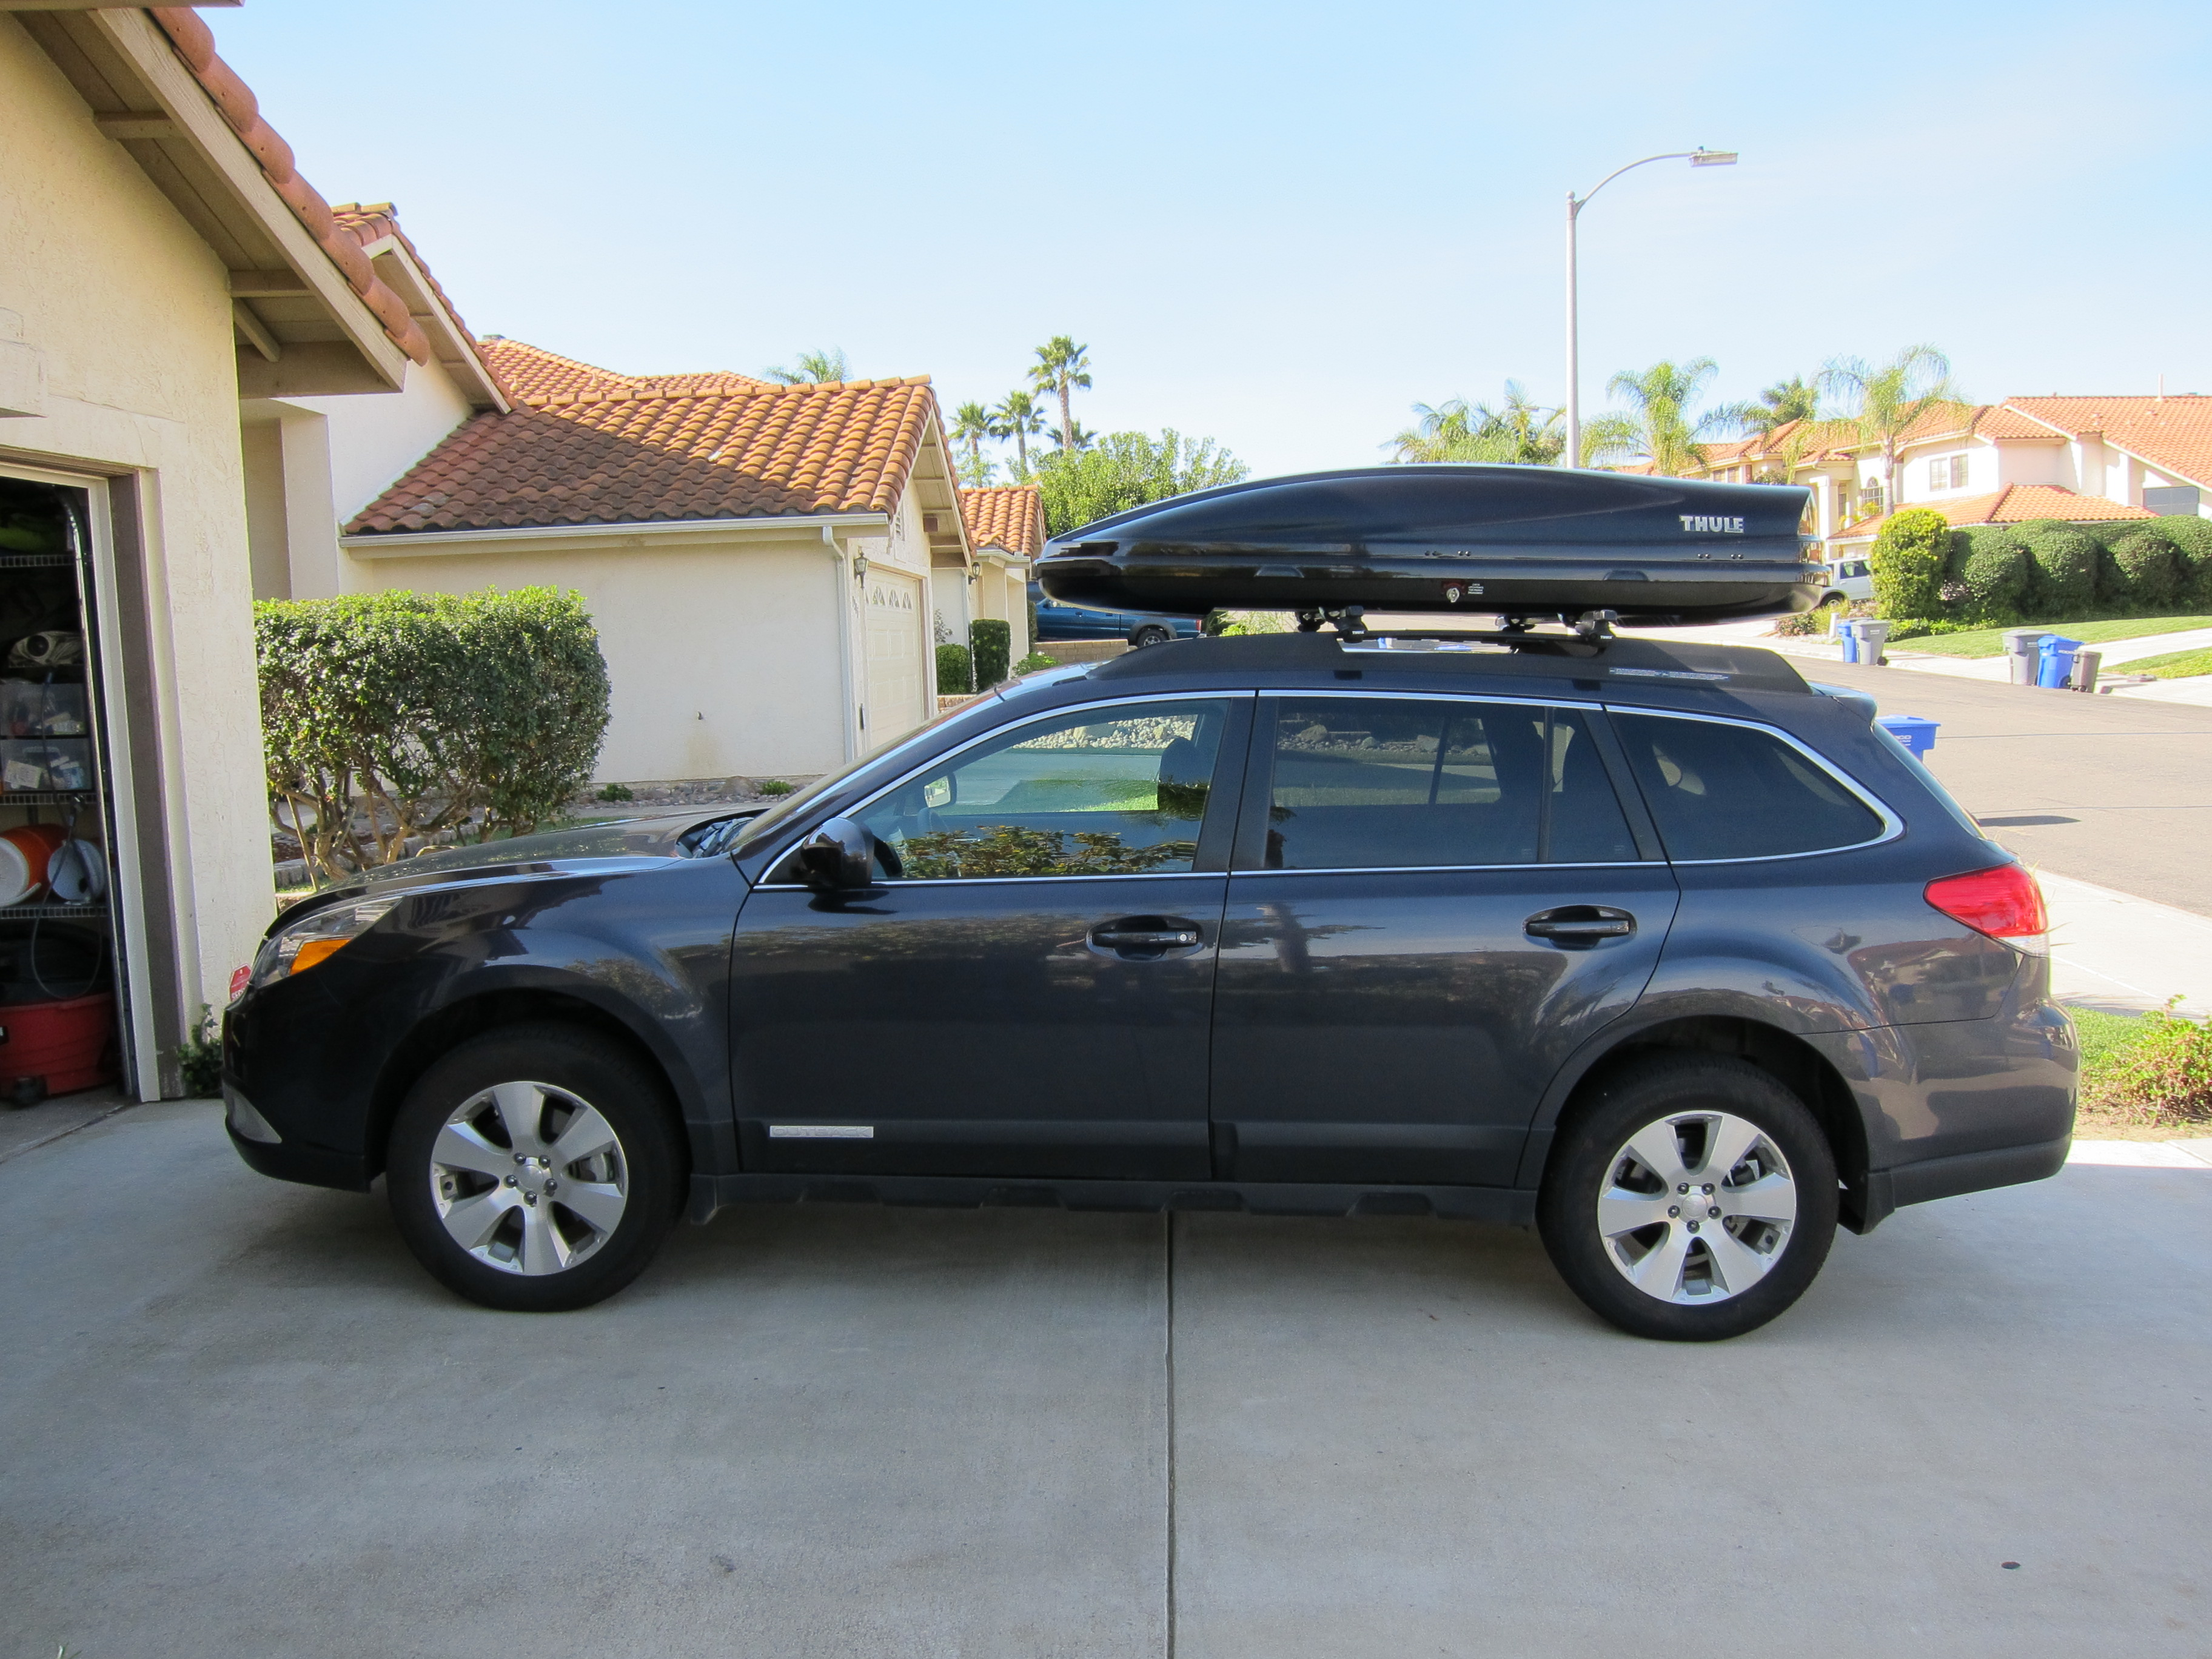 Subaru Crosstrek Rally Bar besides File 2001 04 Ford Escape furthermore Page 7 together with 2012 Hilux besides 2016 Subaru Outback 36r Review Road Test 41372. on 2014 subaru forester roof rack